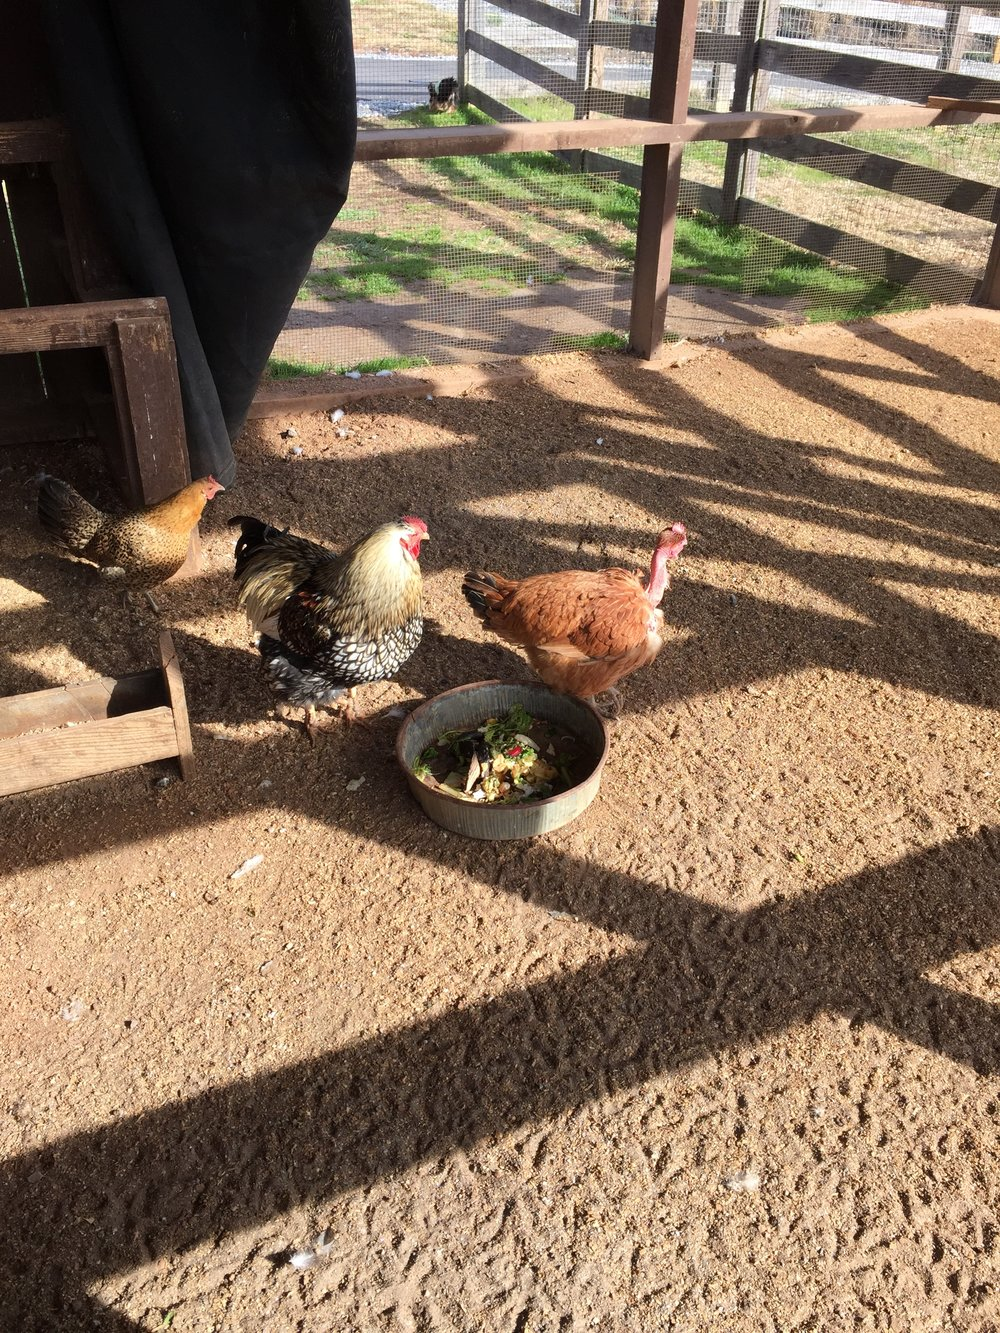 Meet some chickens and other animals at the petting farm.